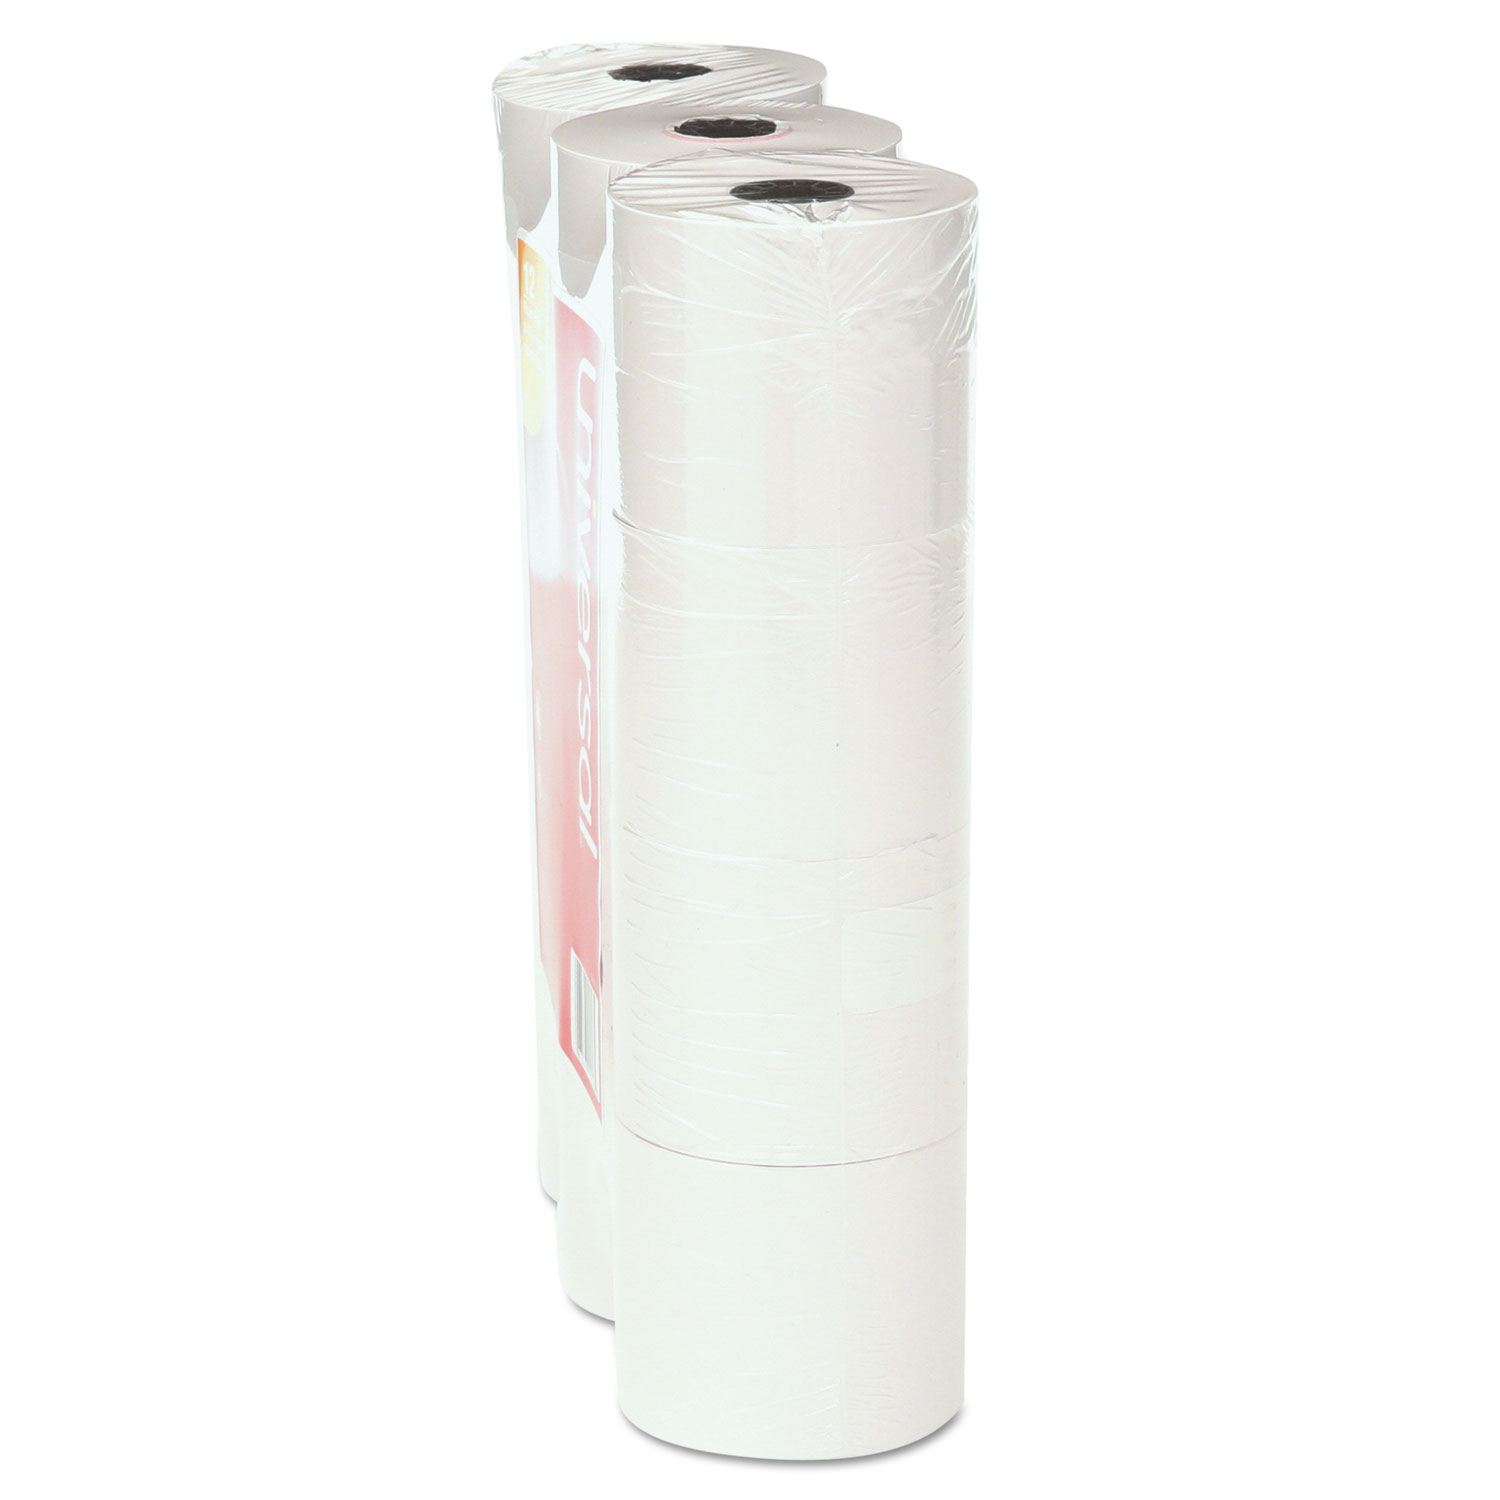 Adding Machine/Calculator Roll, 16 lb, 2-1/4 x 130 ft, White, 12/Pack